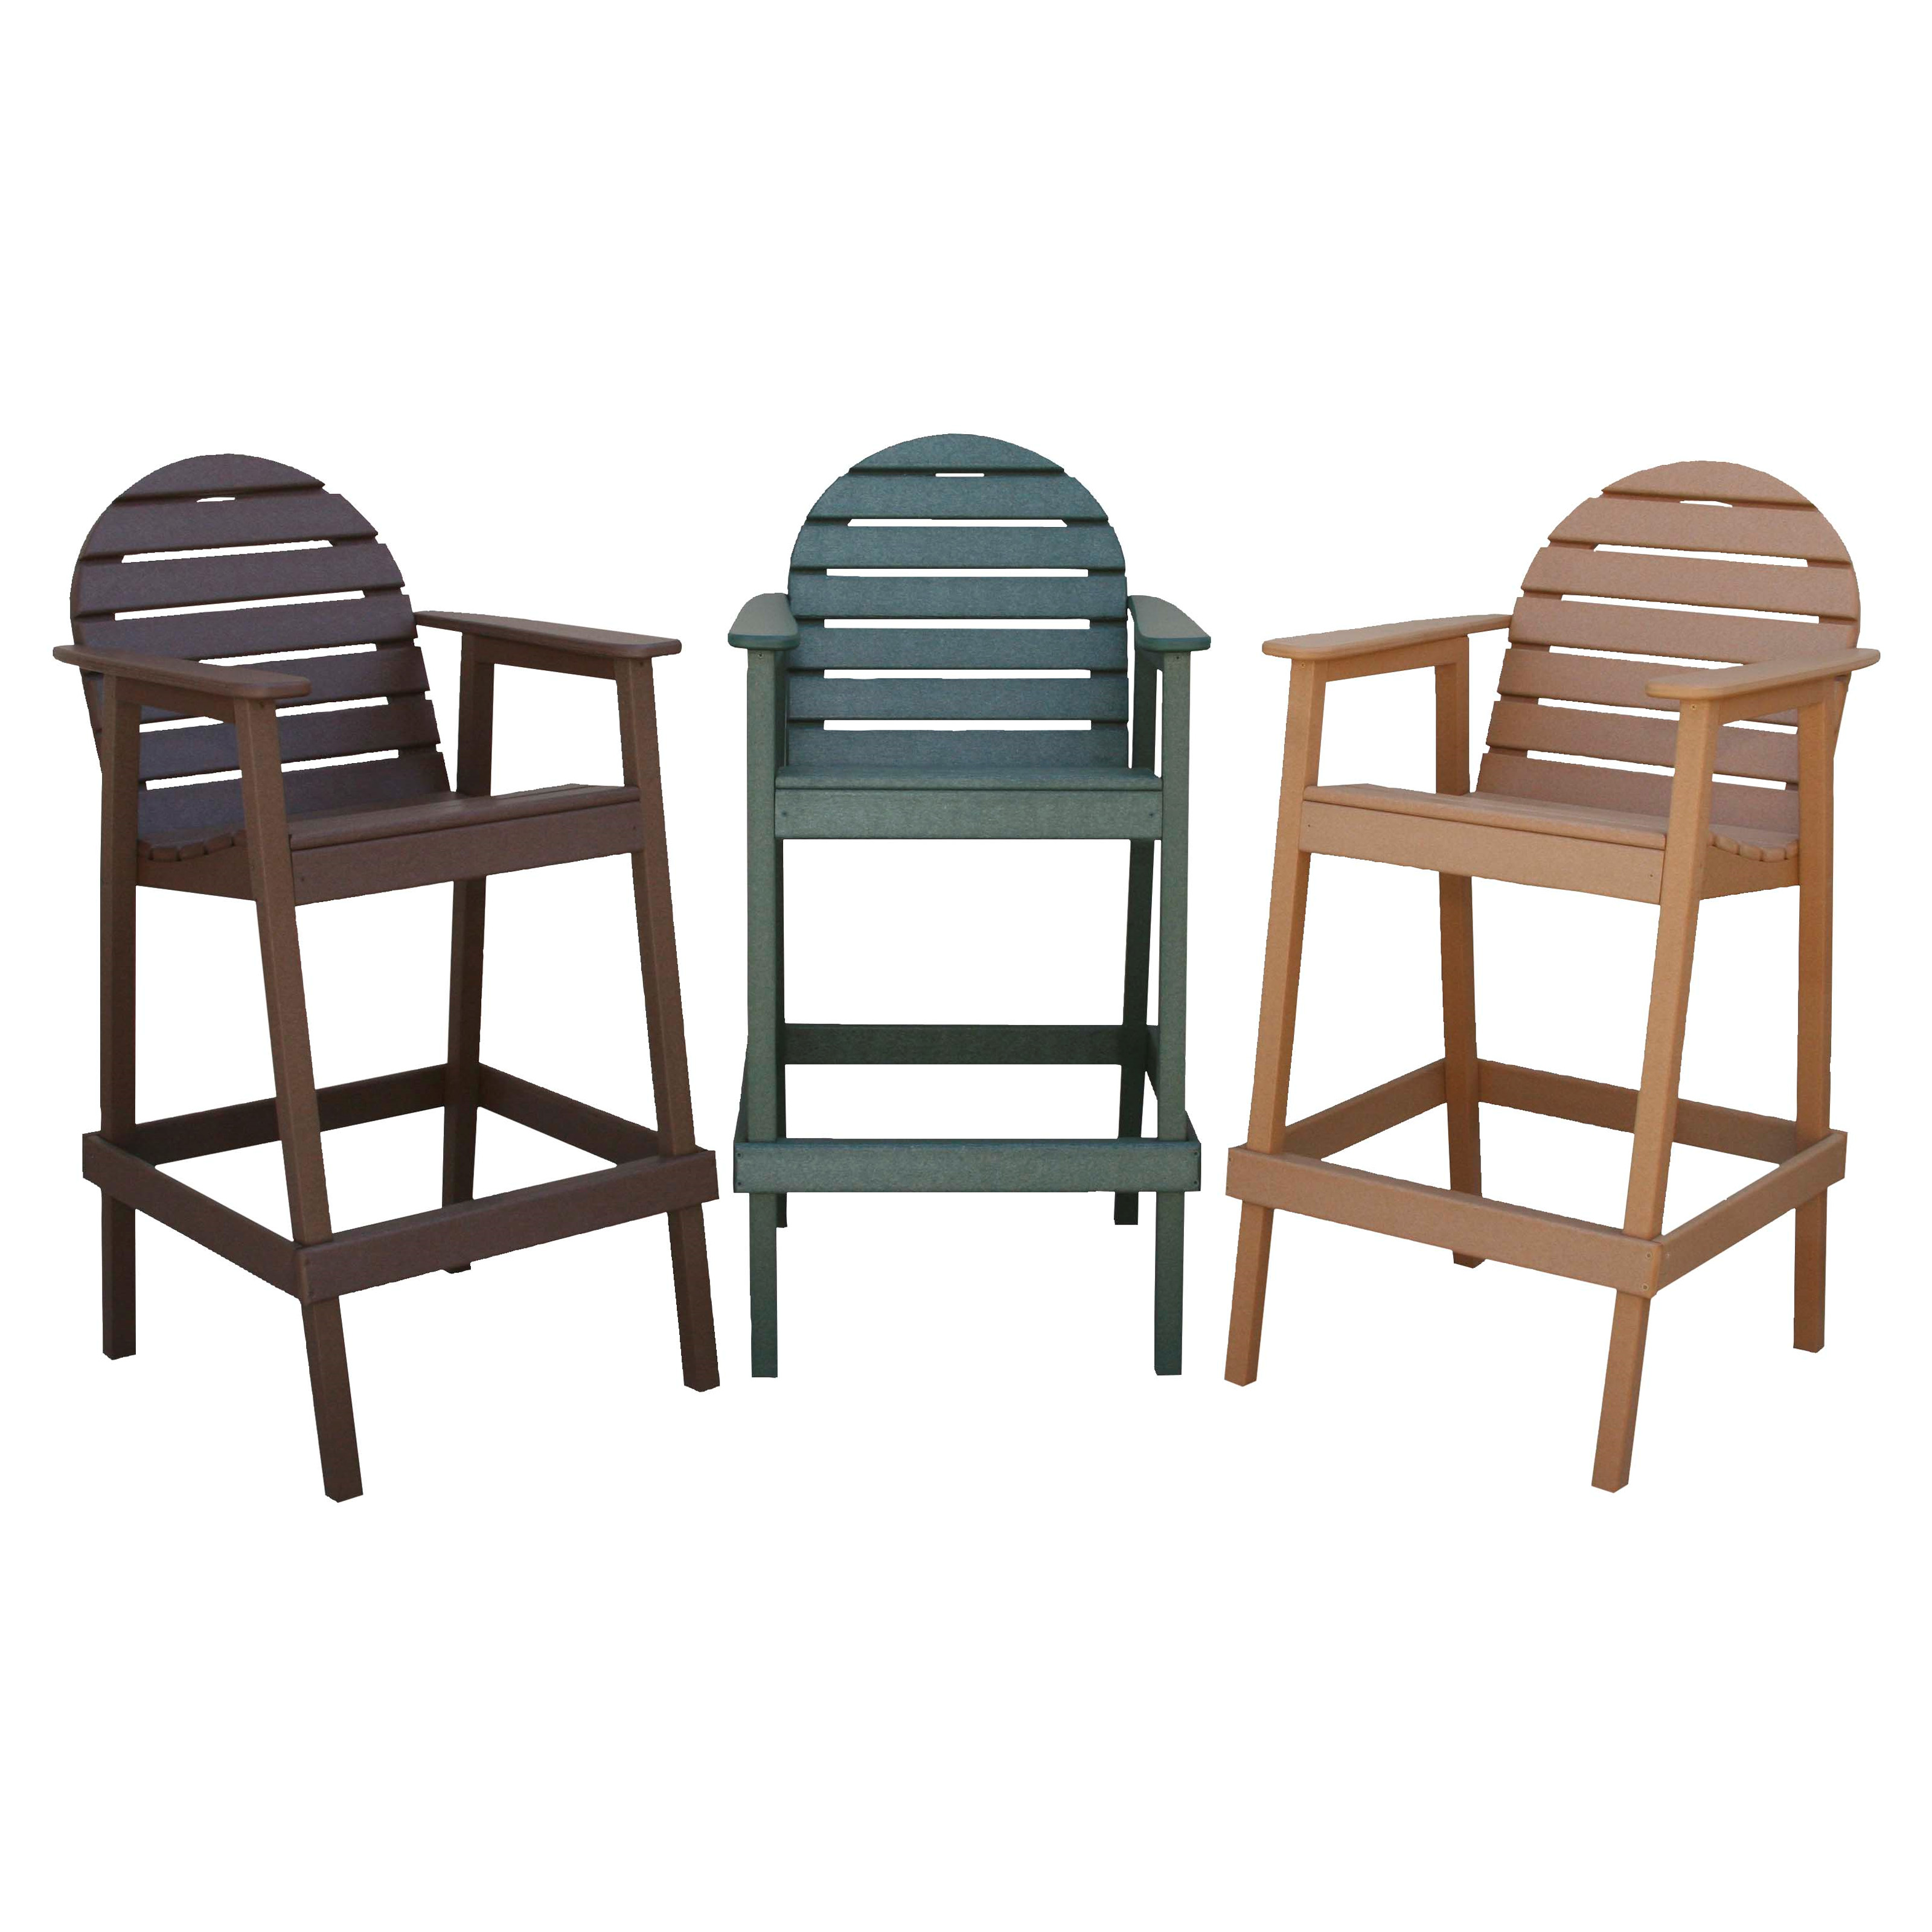 Captain Chair Bar Stools Eagle One Products Extra Tall Captains Chair Outdoor Bar